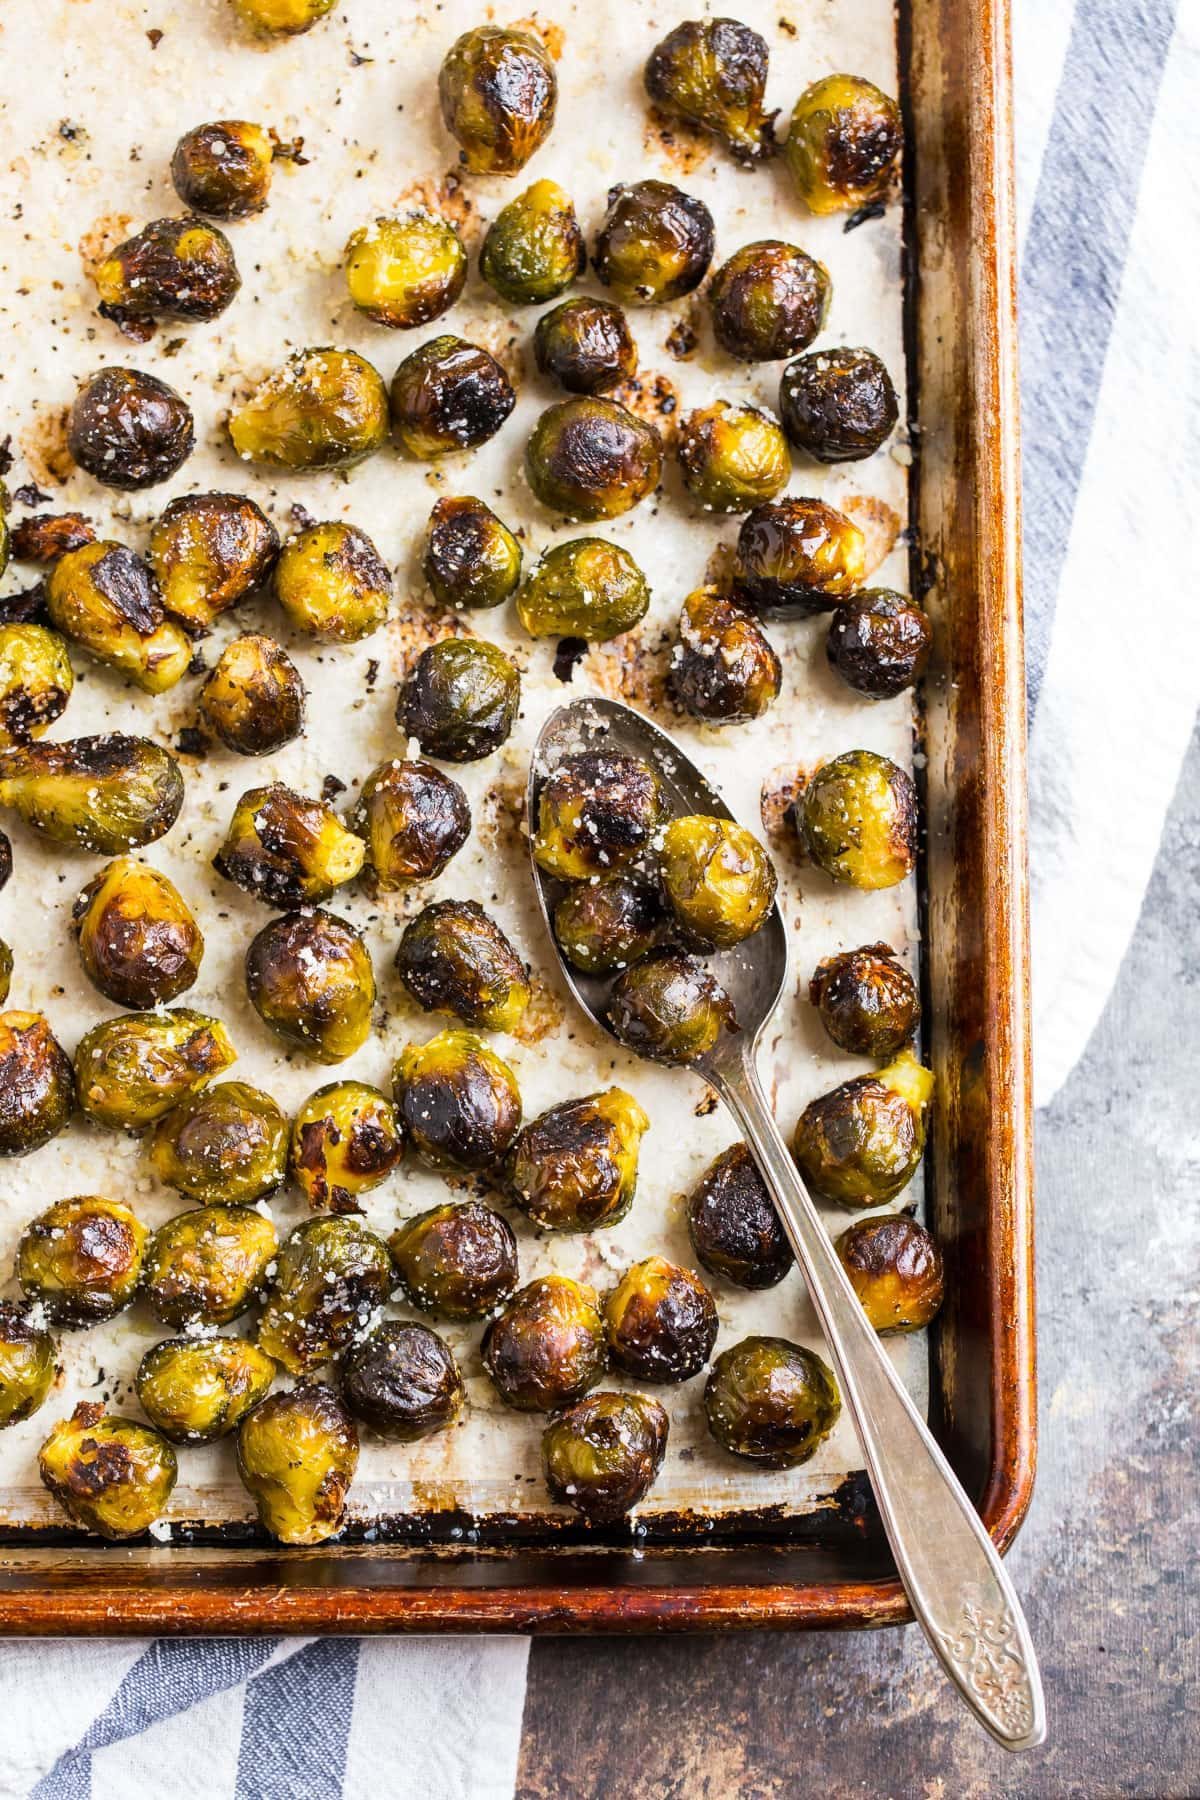 A sheet pan of brown and crispy roasted frozen brussels sprouts